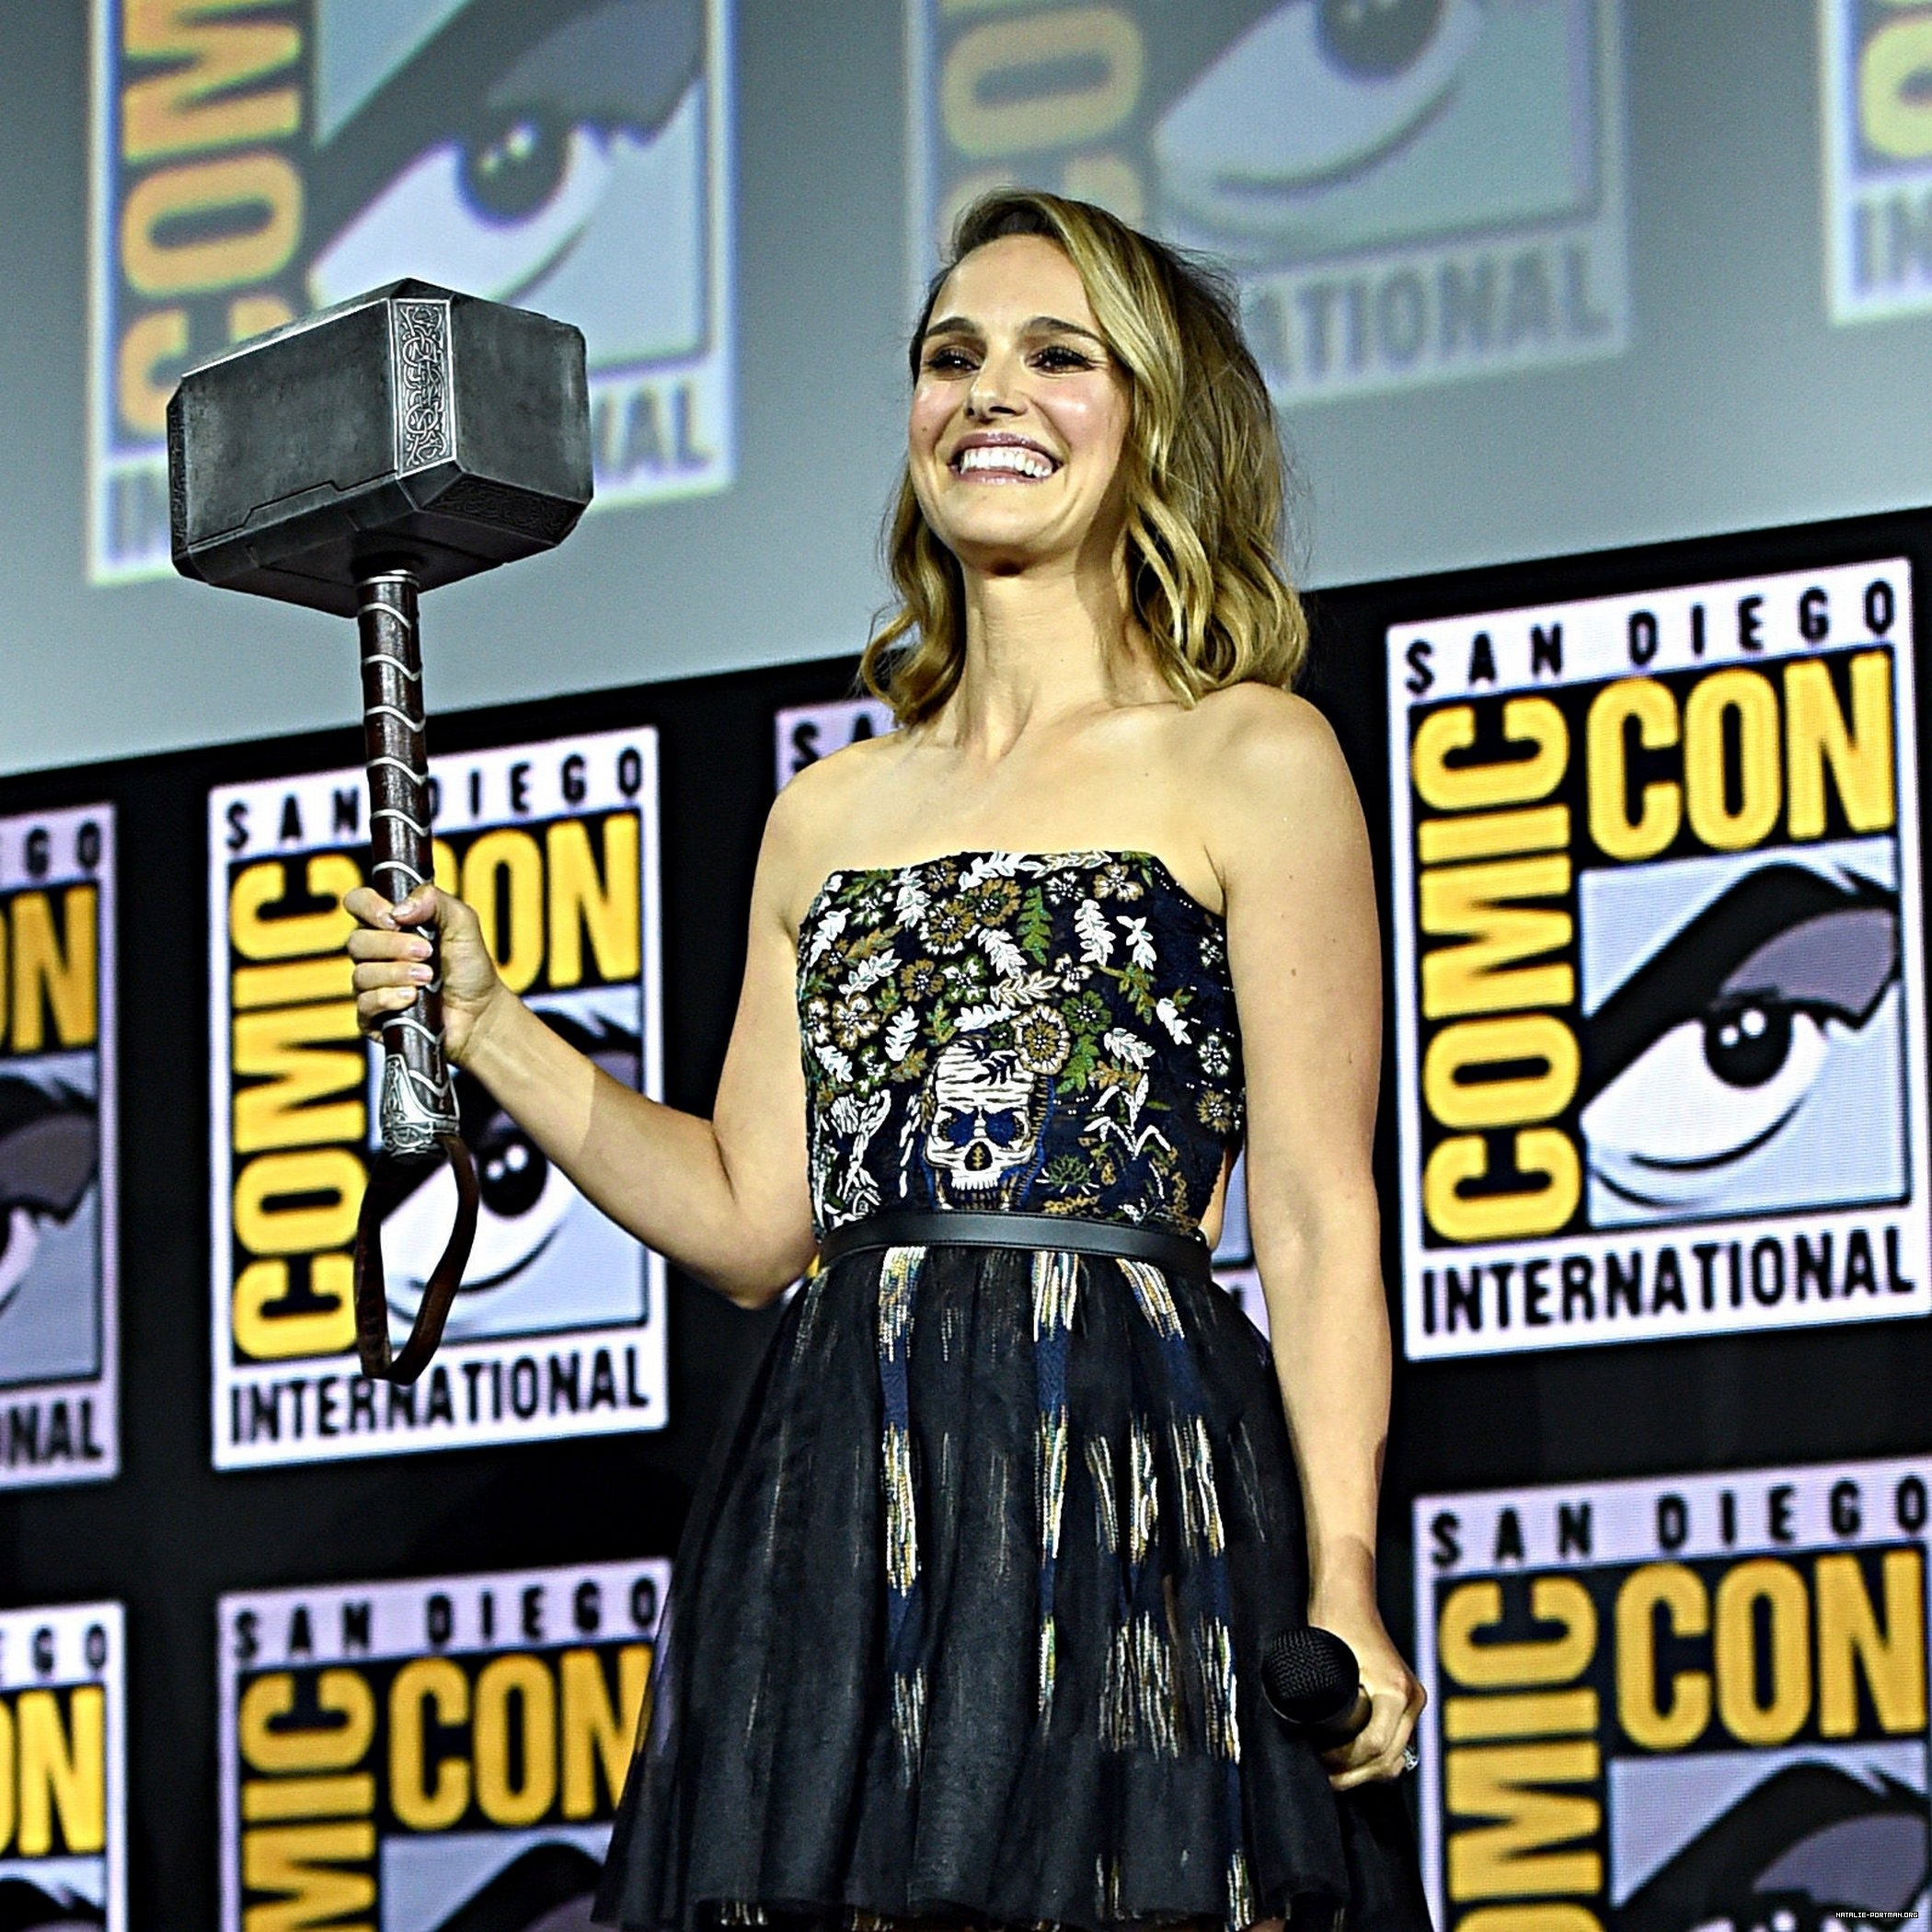 Press: Marvel Director Wants Fans to Stop Calling Natalie Portman 'Female Thor'